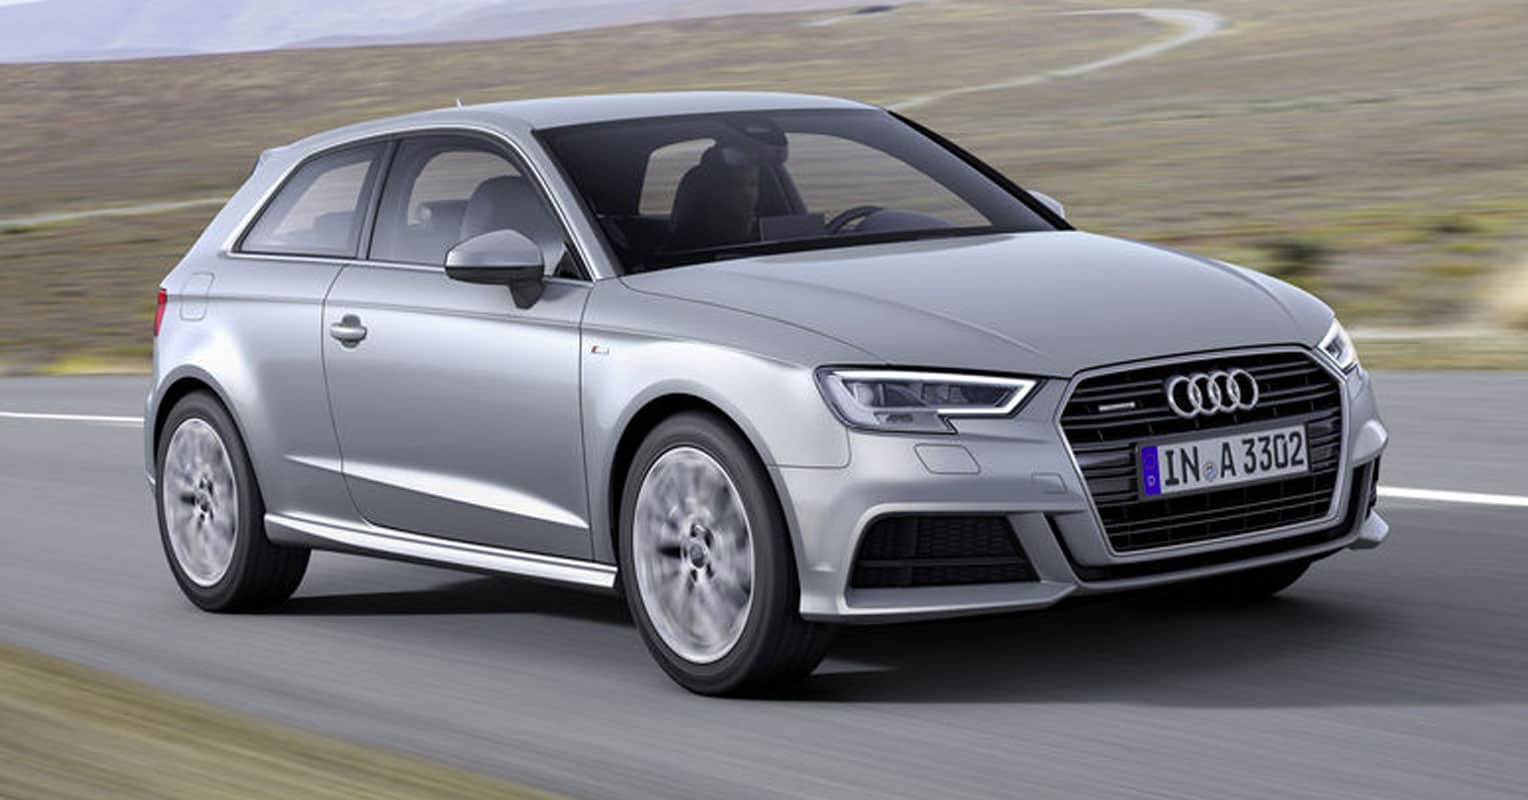 Audi A3 frontal